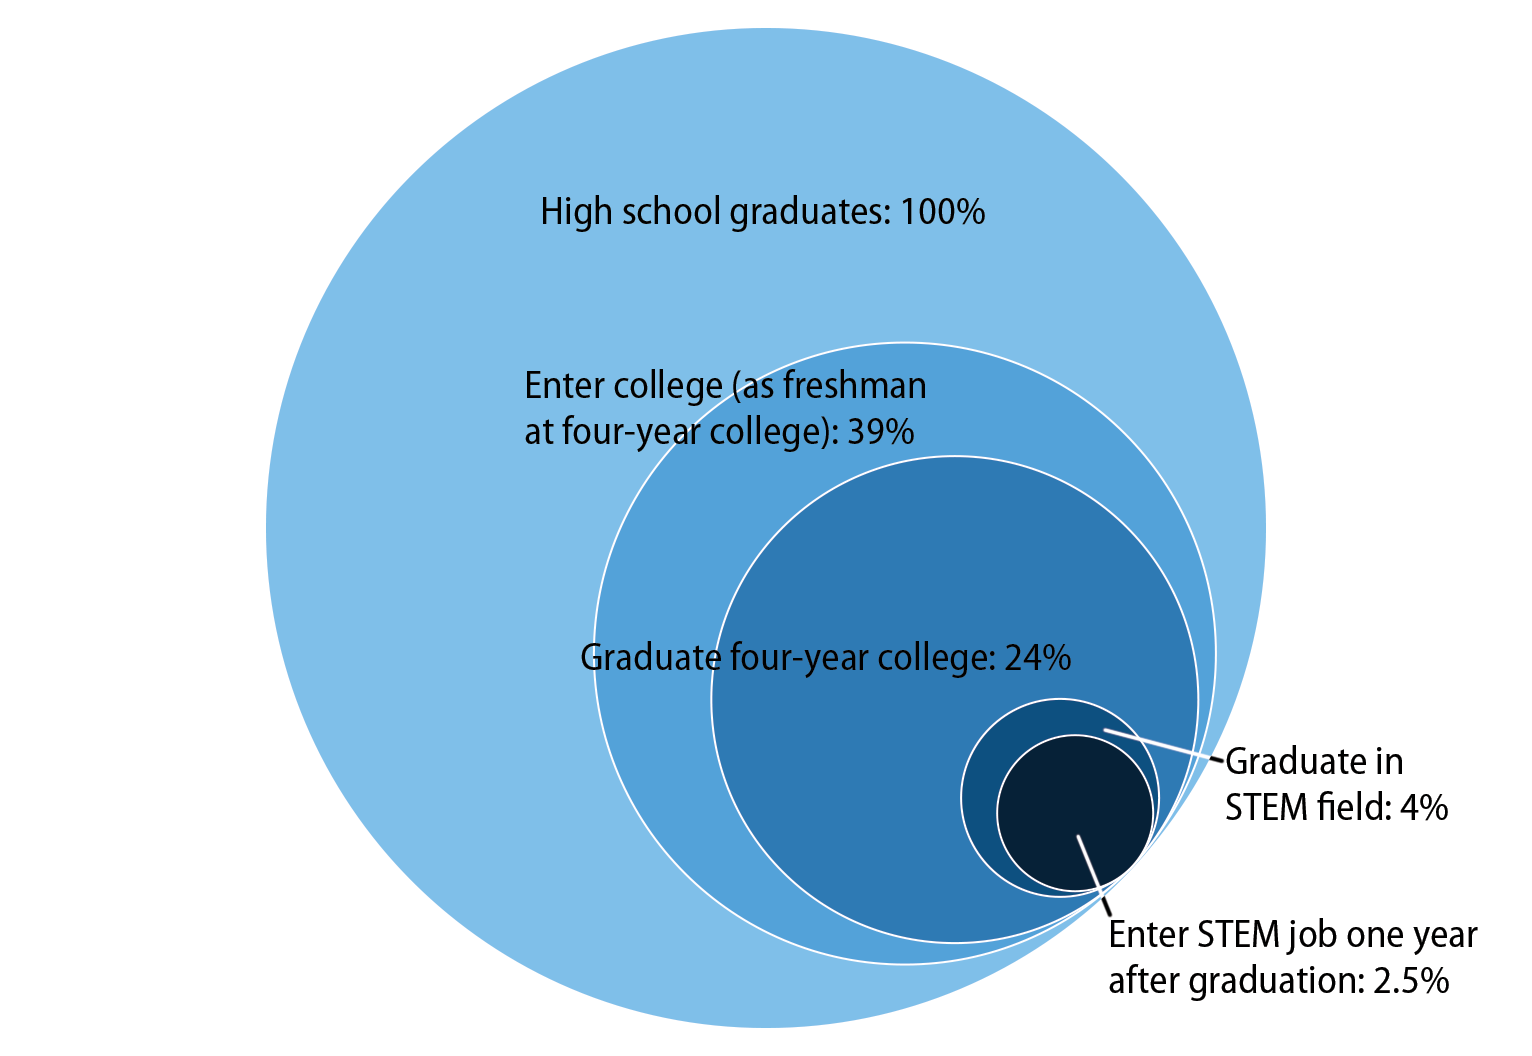 Percent of high school graduates going to college, graduating, and then entering a STEM job